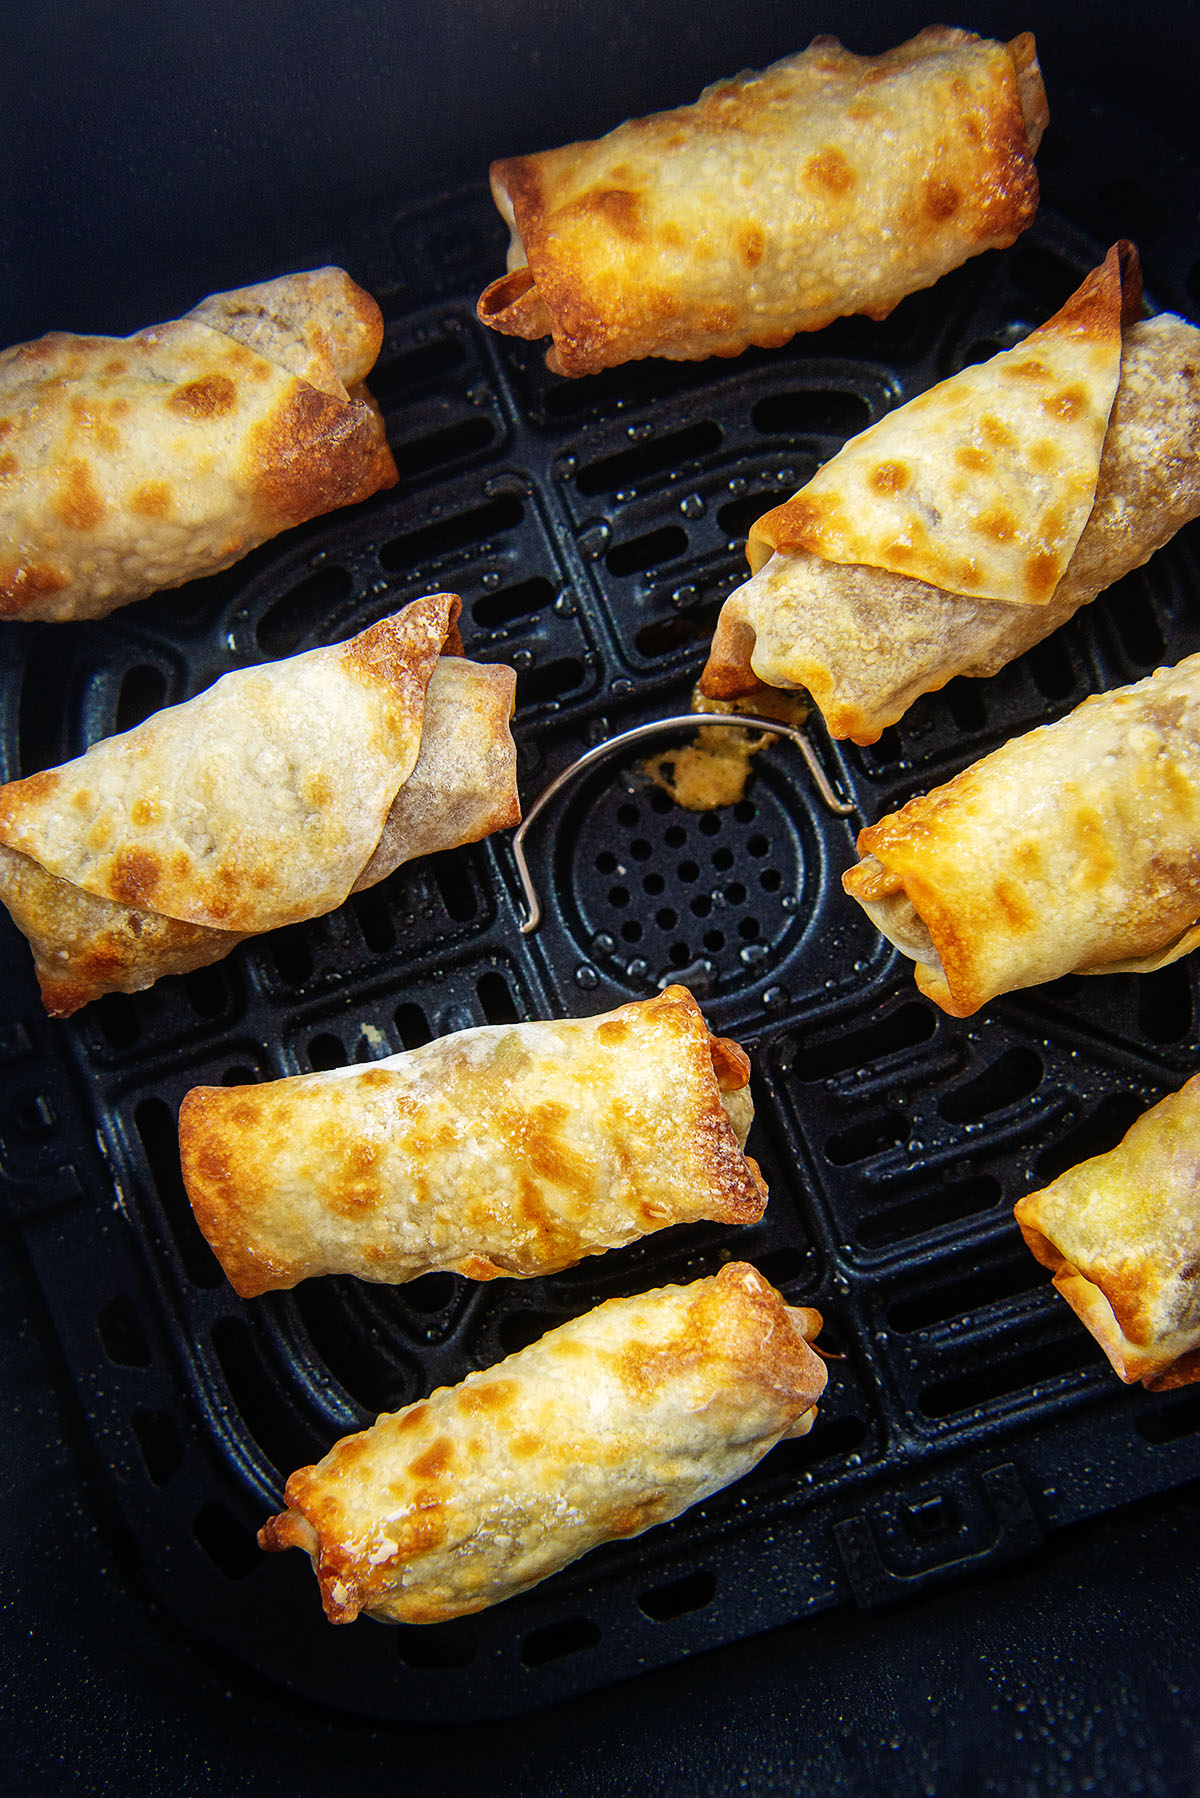 8 egg rolls cooked in an air fryer basket.